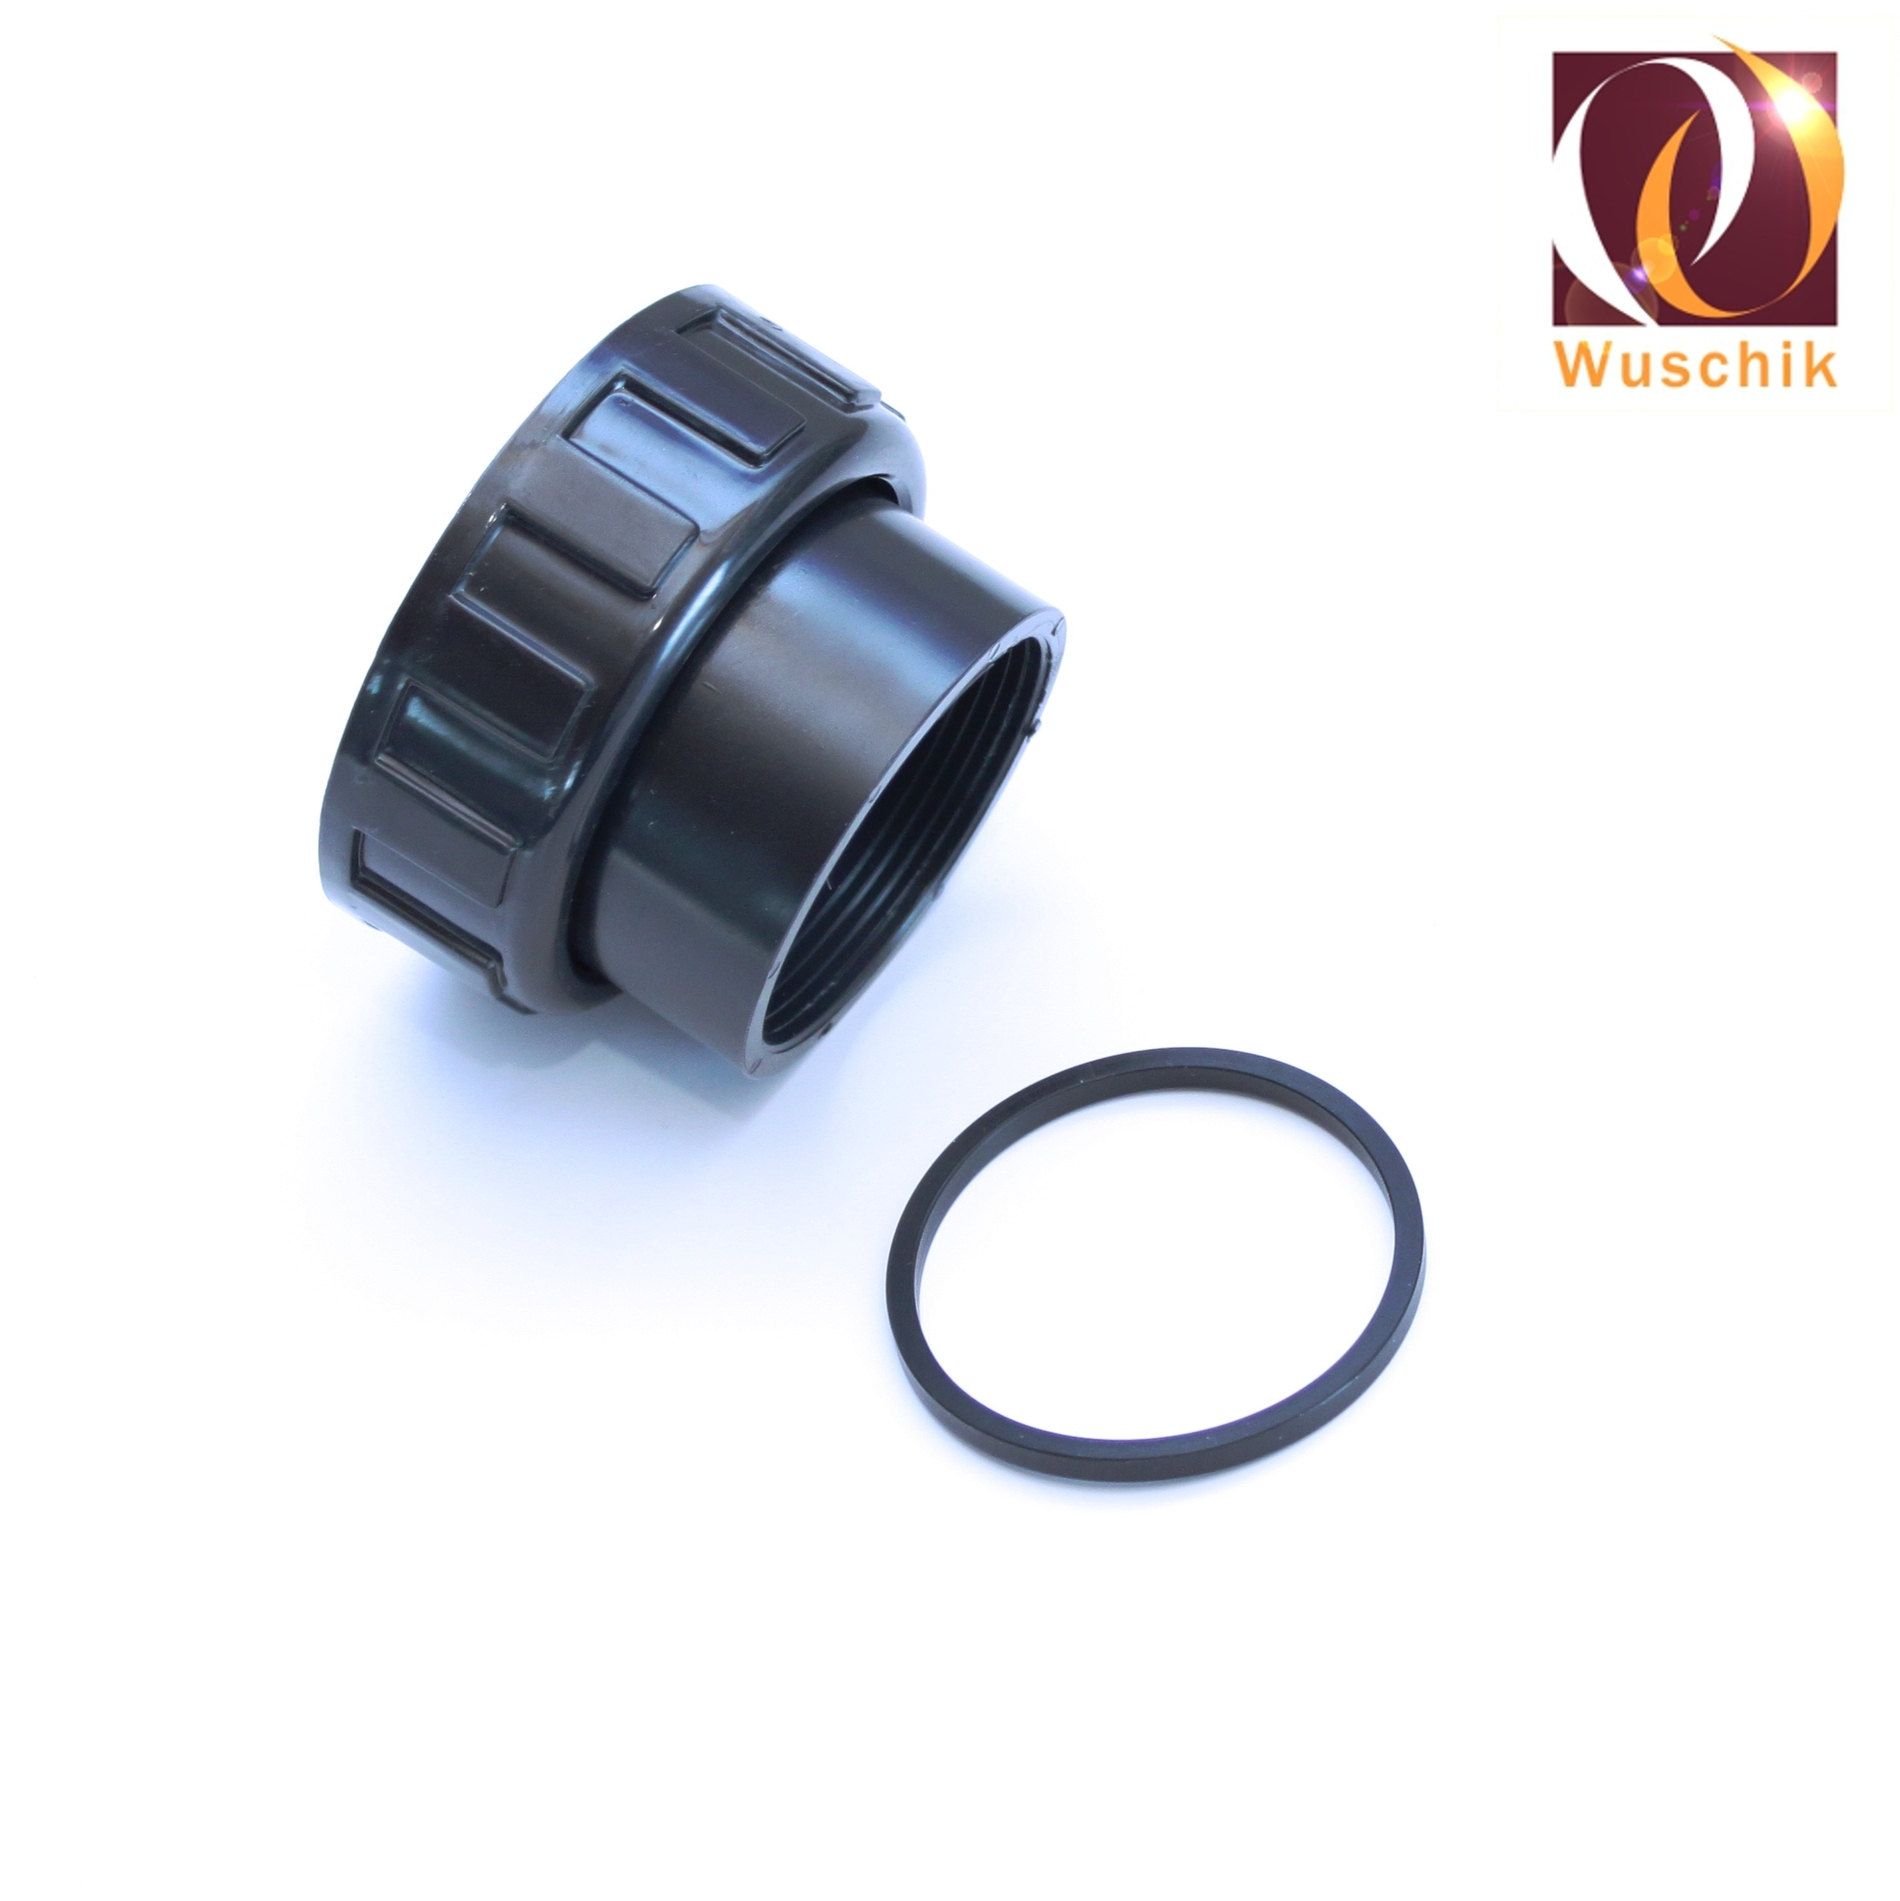 Pump-connection-connector-fitting-50-mm-thread-2-1-4-Inch-Nut-glue-seal